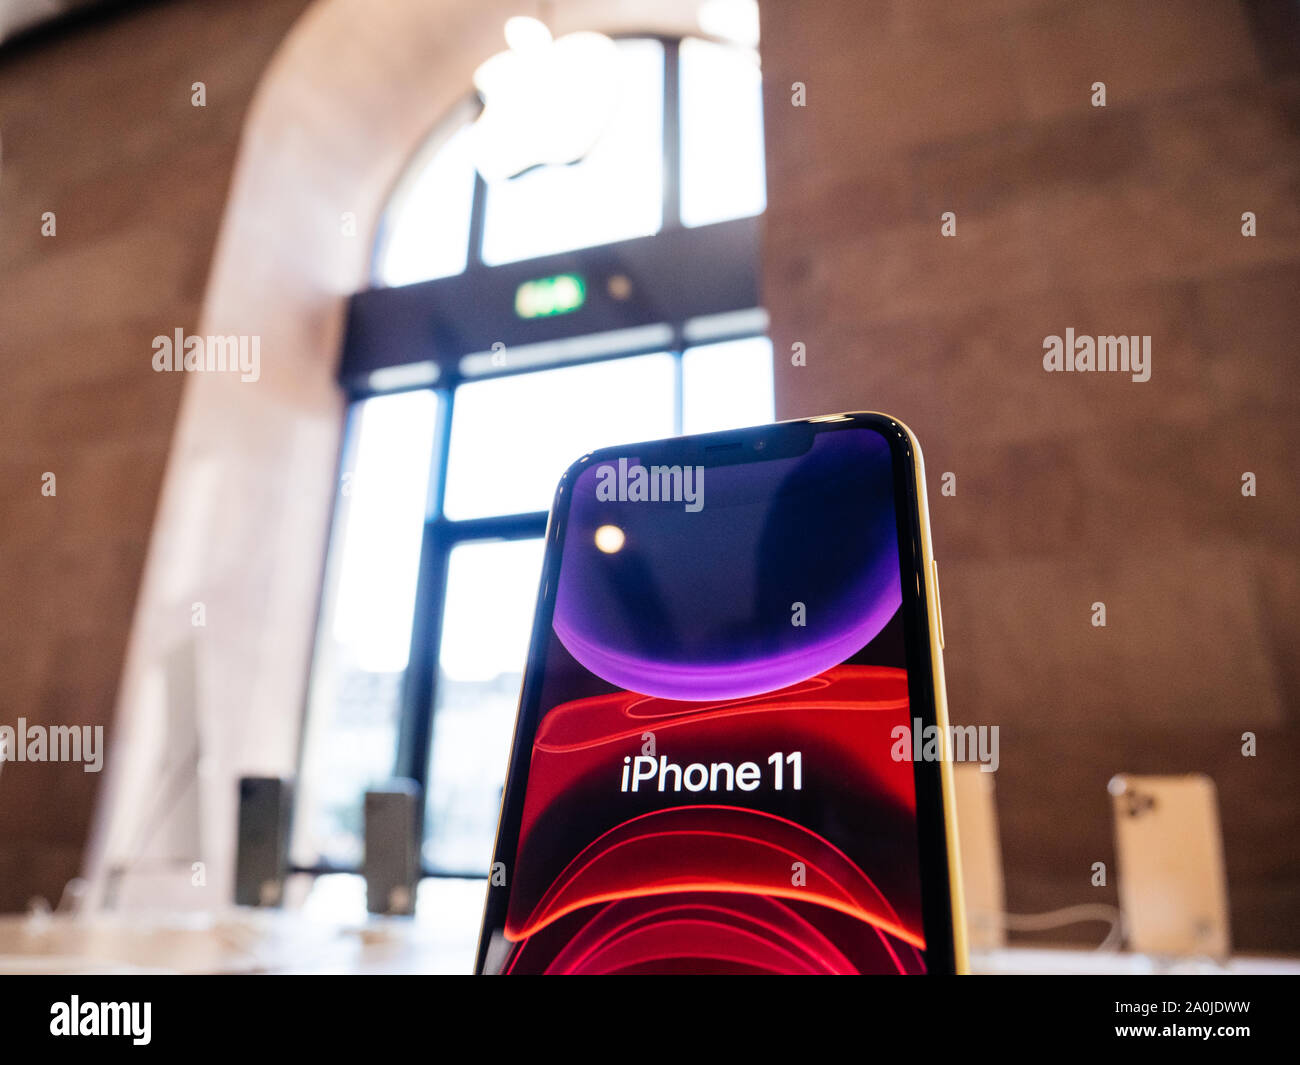 Paris France Sep 20 2019 The New Iphone 11 Red Wallpaper Displayed In Apple Store As The Smartphone By Apple Computers Goes On Sale Stock Photo Alamy